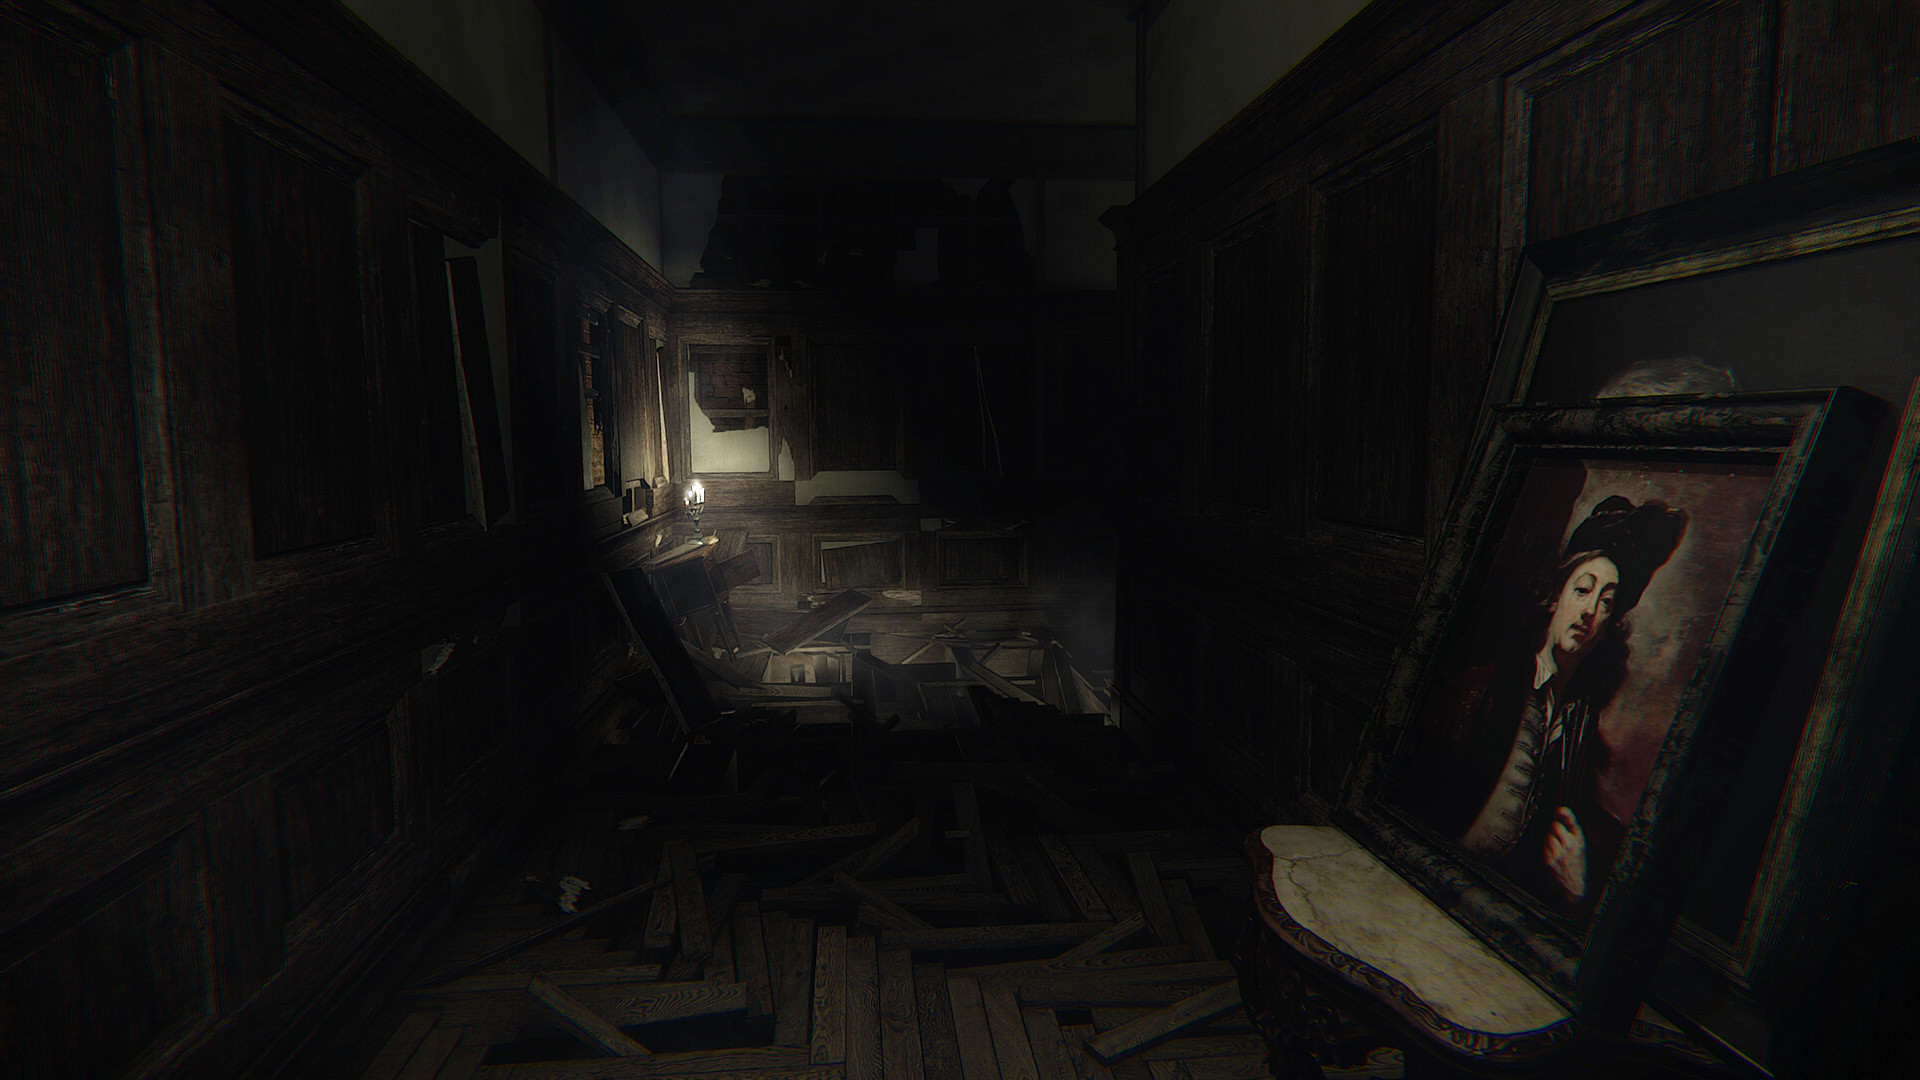 30 Minutes Of Creepy, Terrifying Layers Of Fear Gameplay 3004317 ss c7fbc8c76e0adb4fc1531665840d8dc7031eff4b.1920x1080